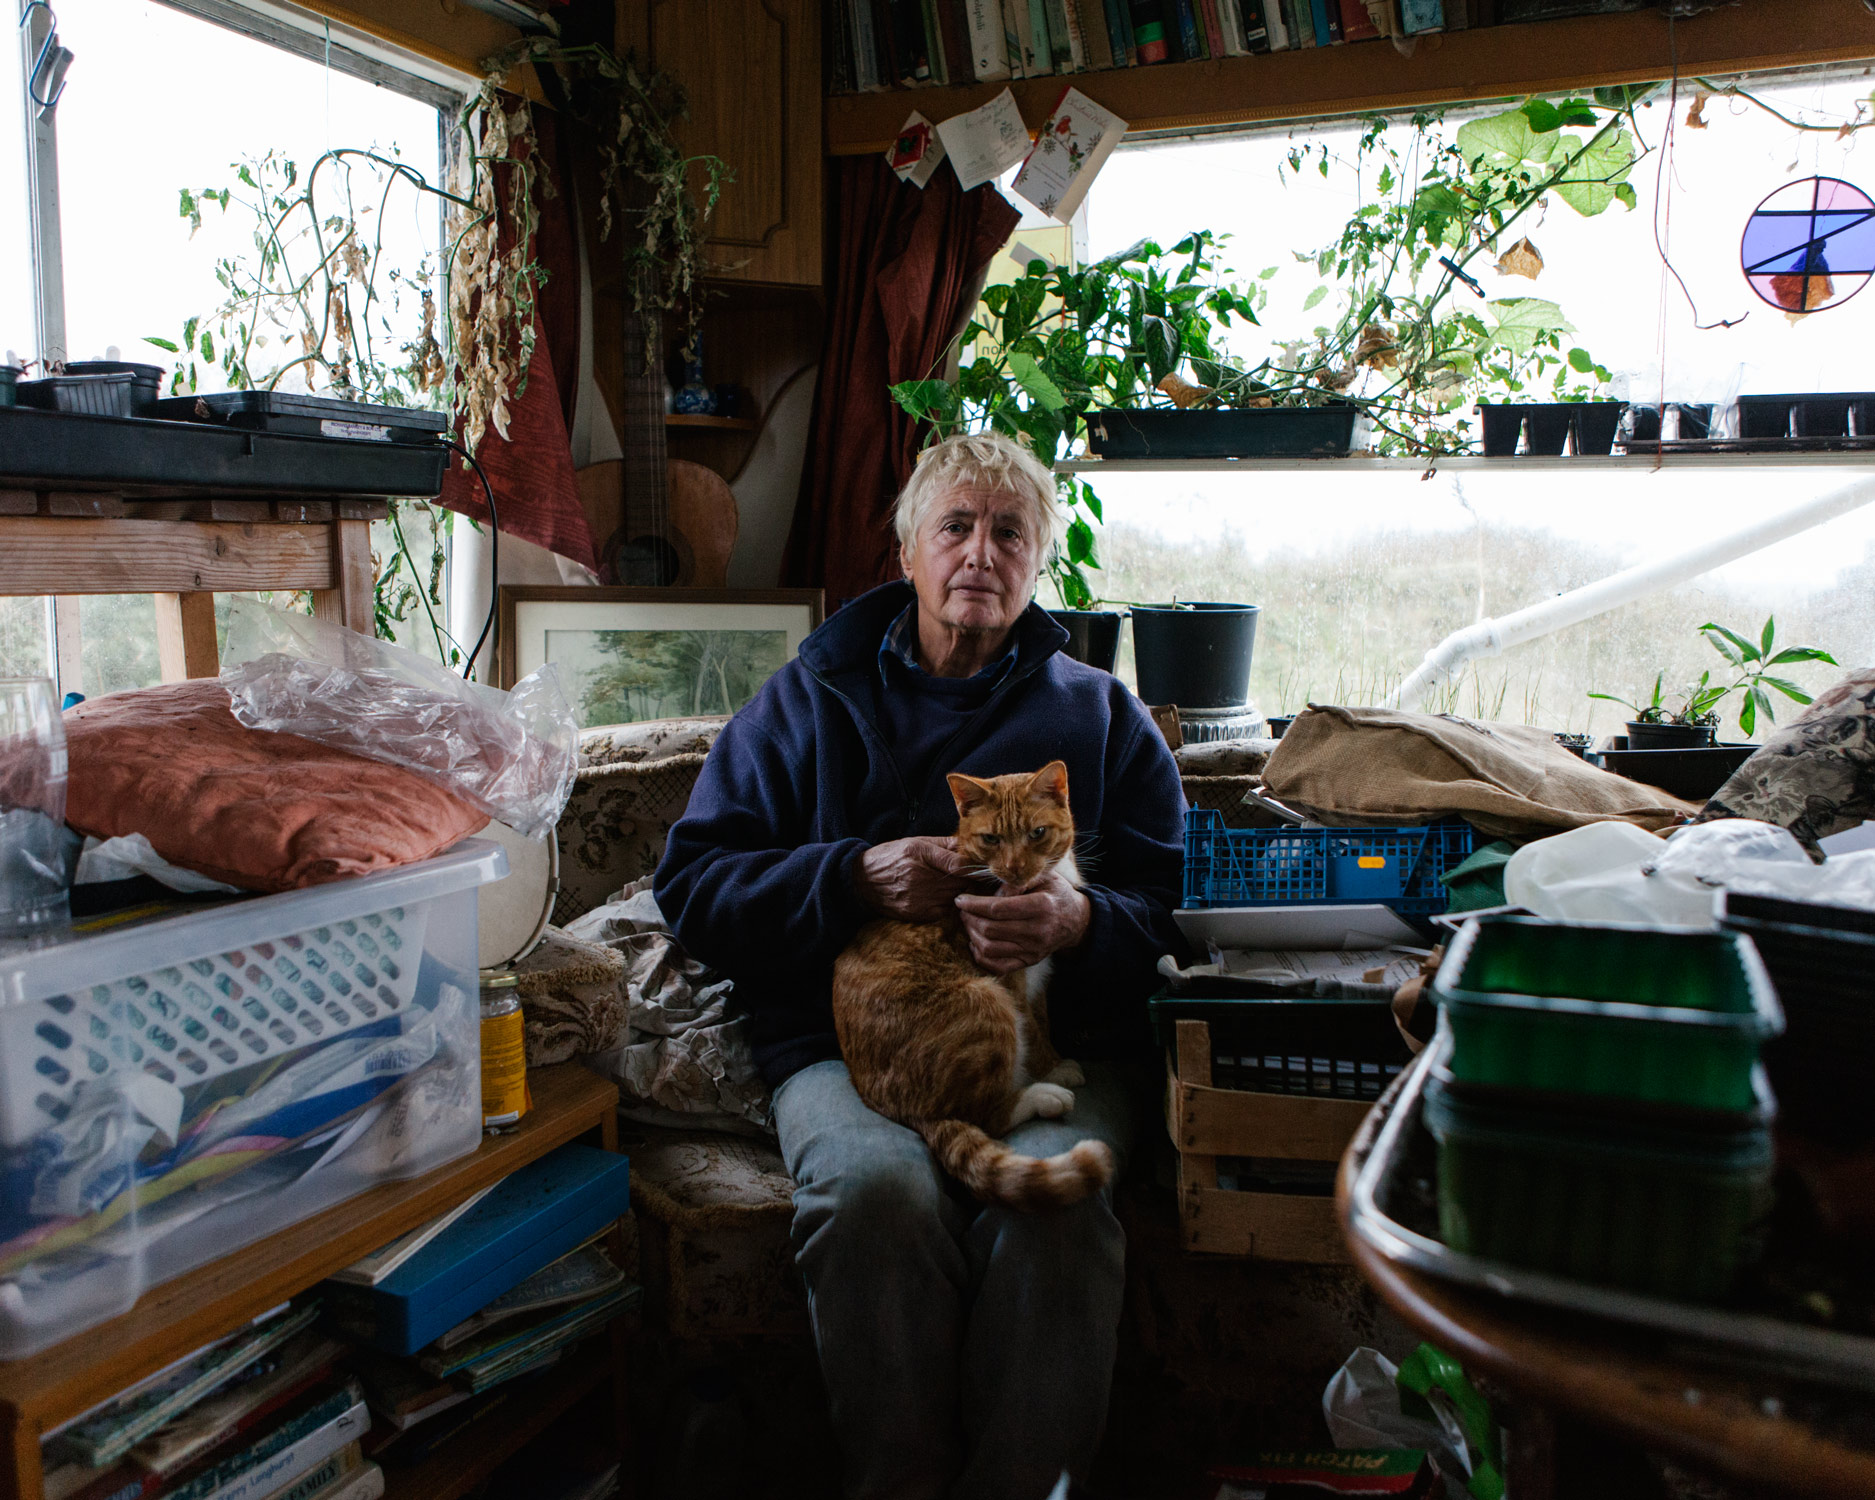 "A big tidal surge in 2013 finally undermined Bryony's bungalow. She was forced to move across the street and into a caravan with all her possessions. ""At the age of 70 I've lost my house and now I'm on the verge of losing everything. I'm fighting to keep my life together."" - Photograph taken in 2017."